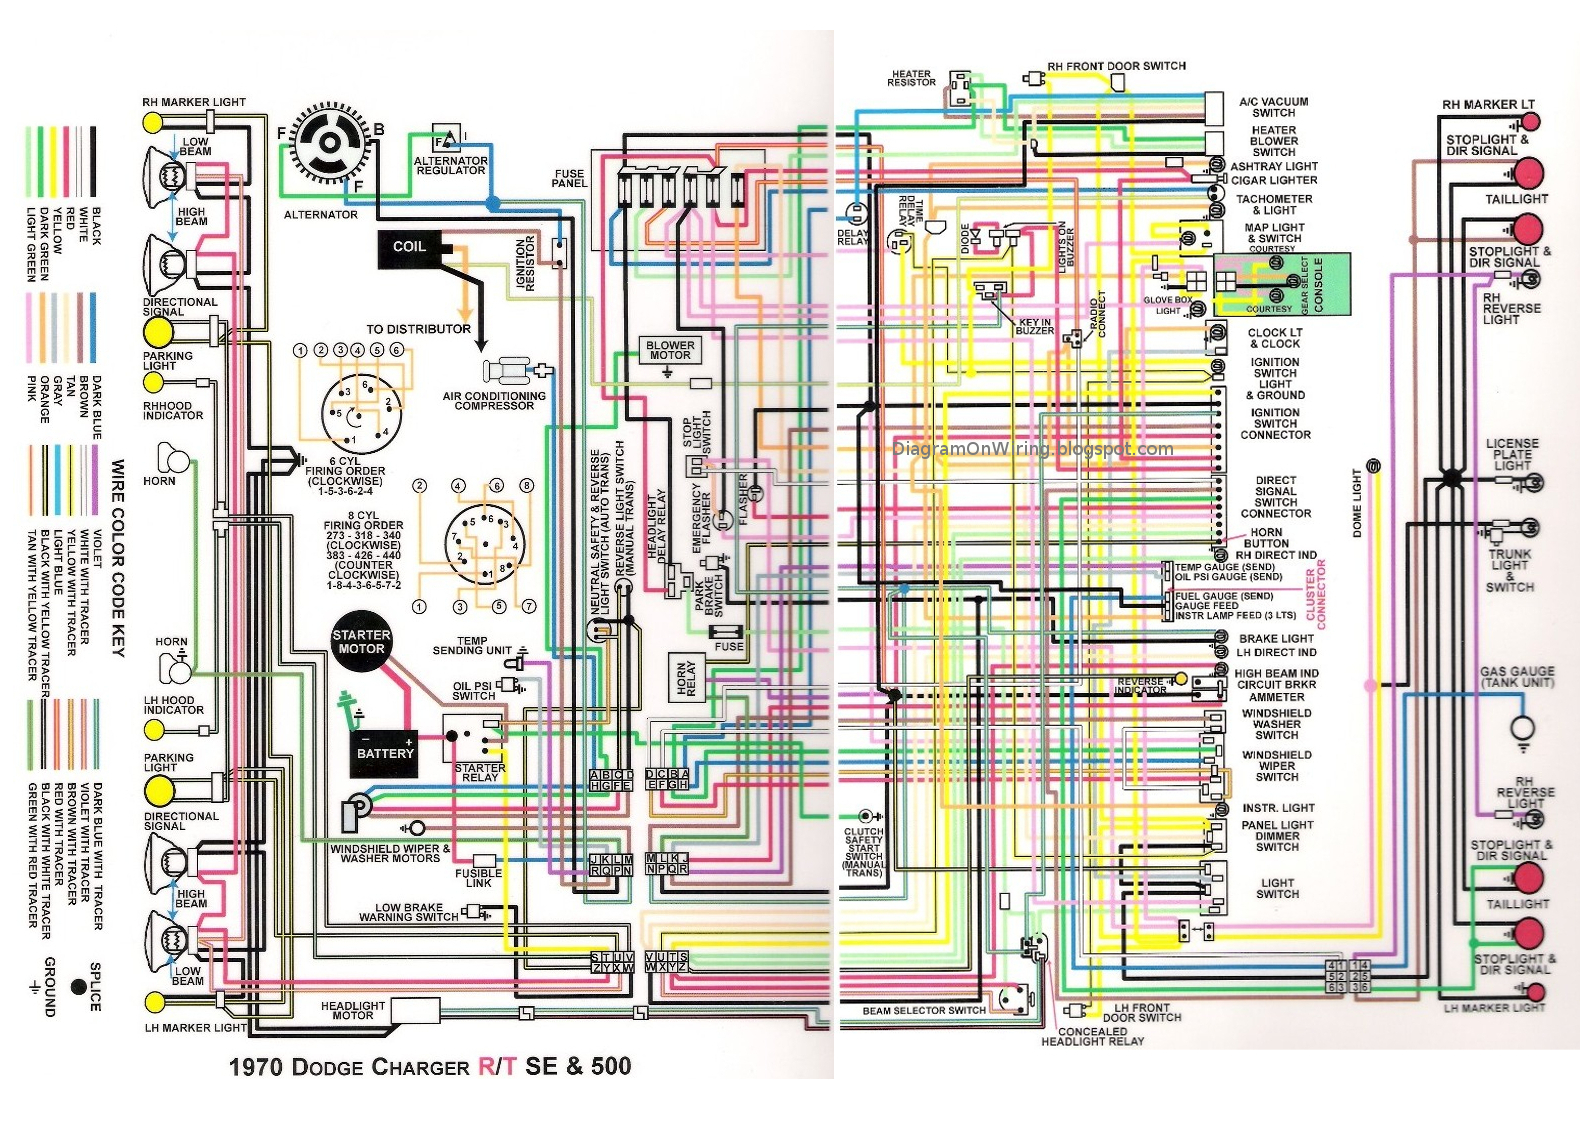 Chrysler 383 Wiring Diagram Start Building A 1959 Diagrams Rh Wizard Com 2000 Voyager Stereo